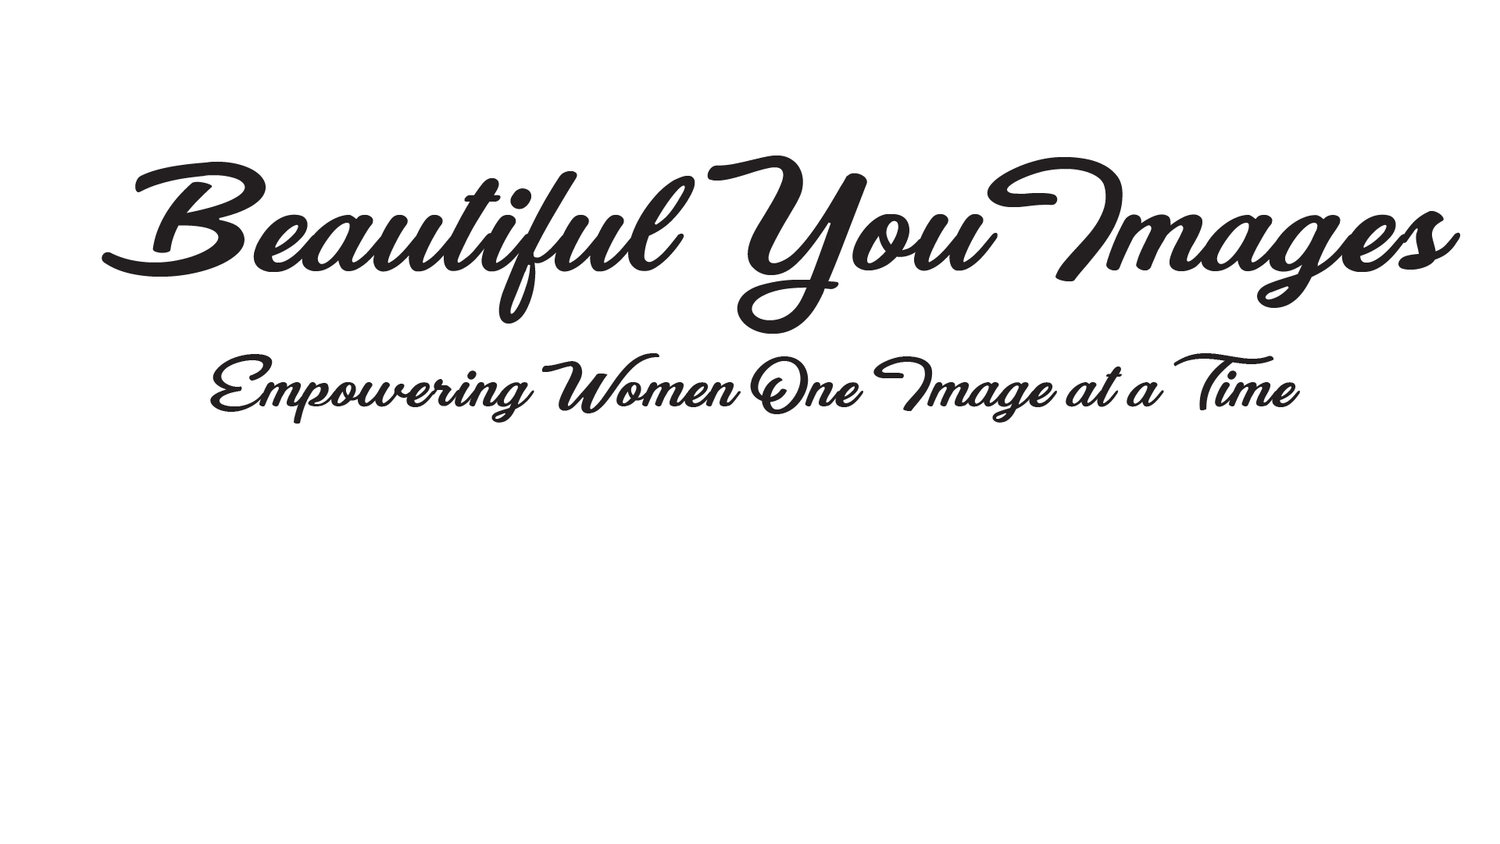 Beautiful You Images - Albuquerque, New Mexico Boudoir Photography